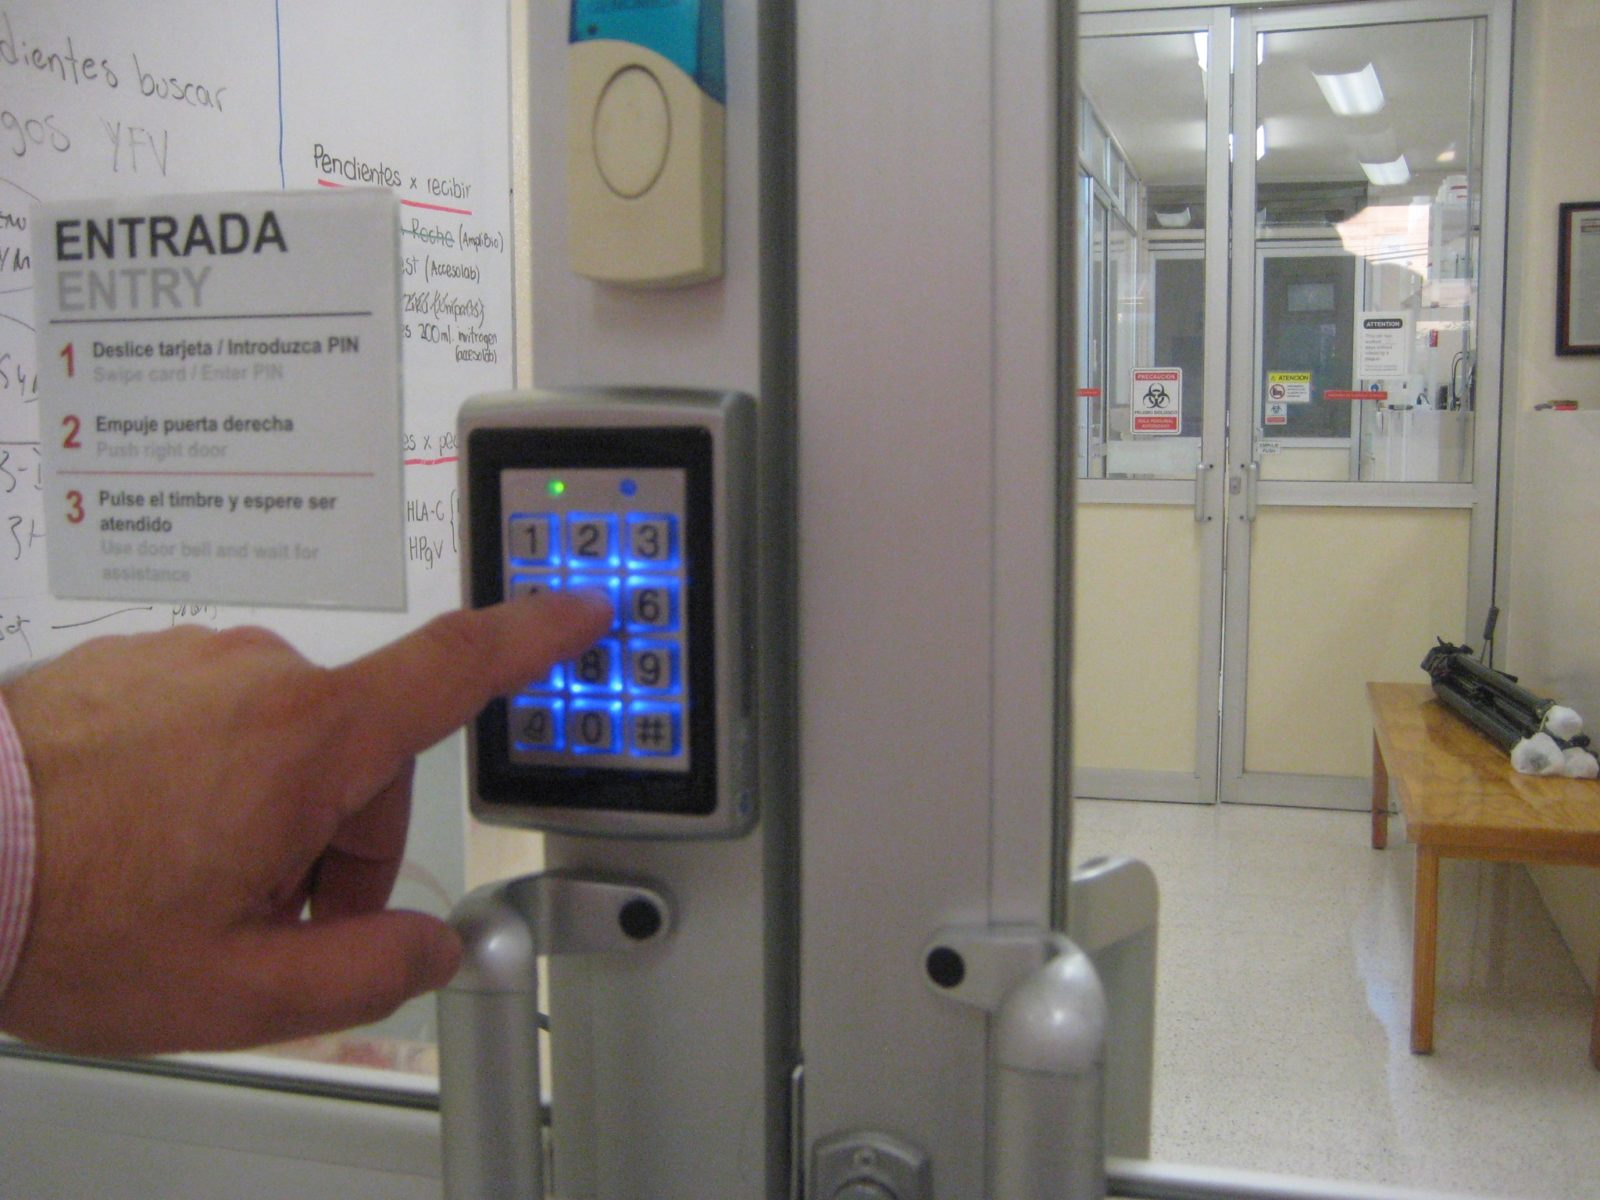 Access Control Systems Are The Future of Security